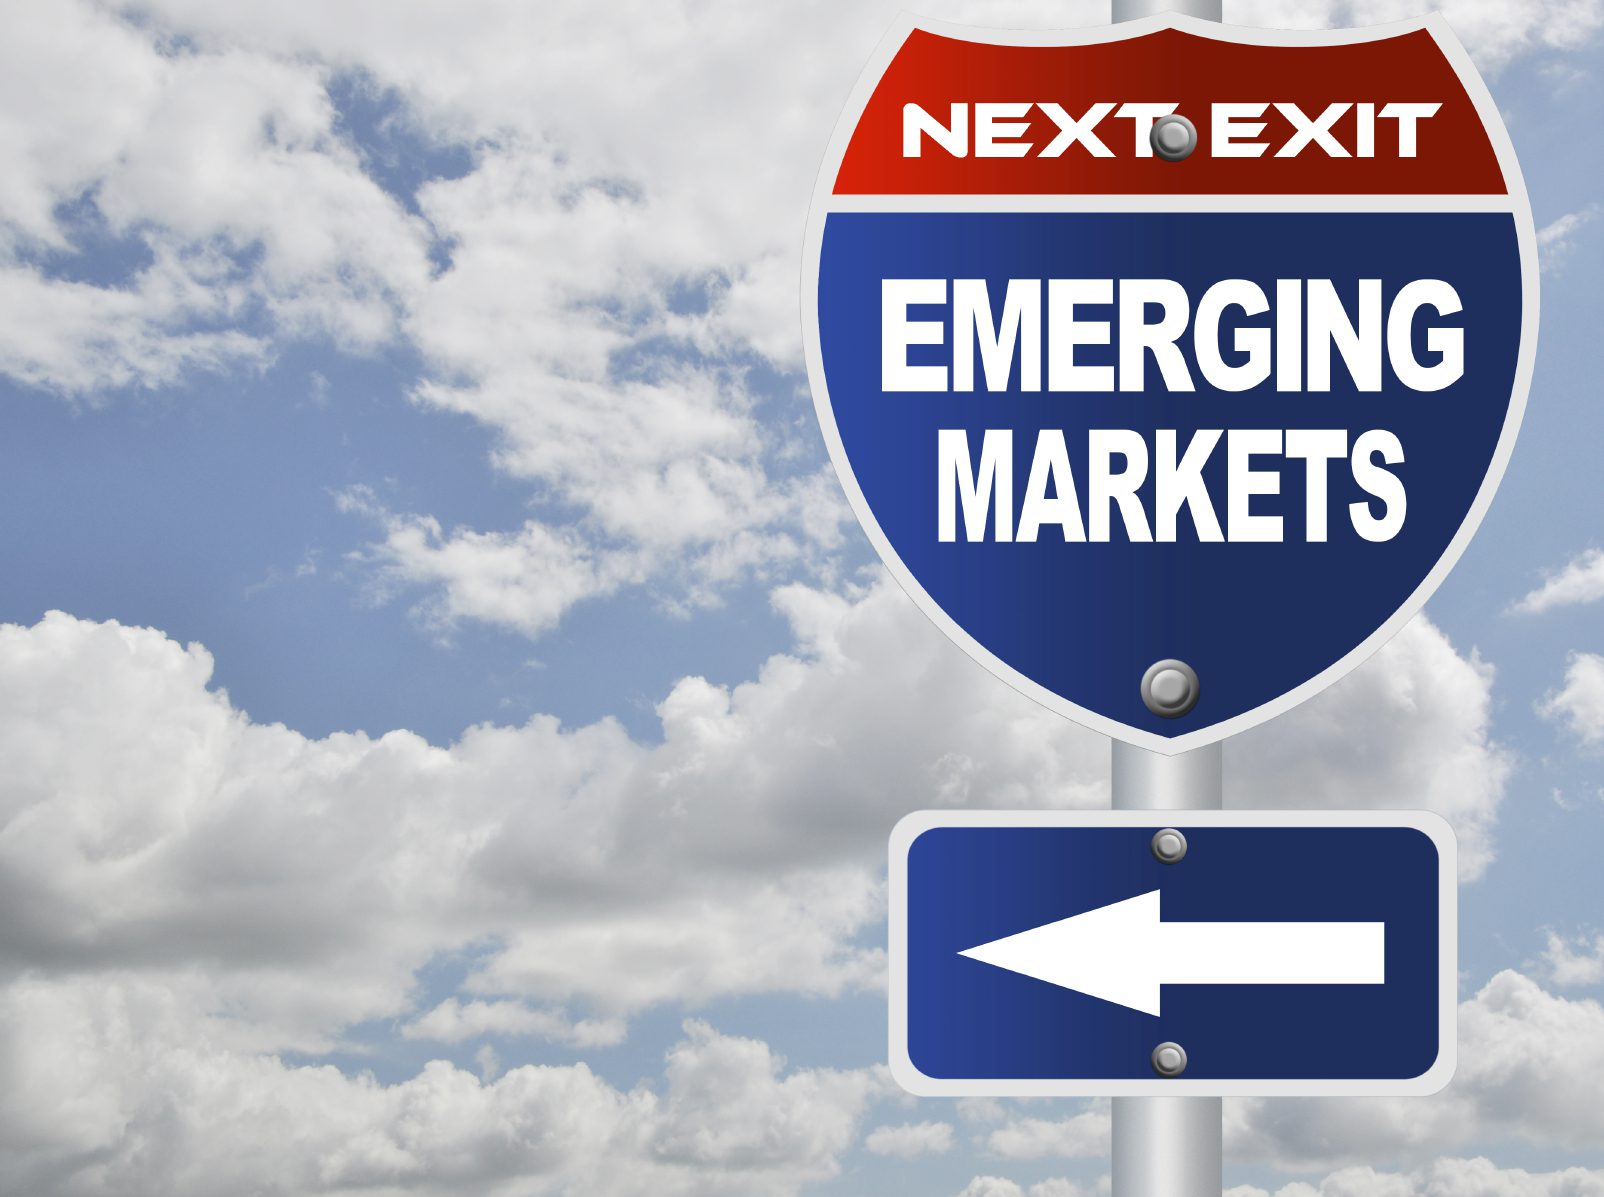 Emerging Markets: 4 Keys to Speed and Success